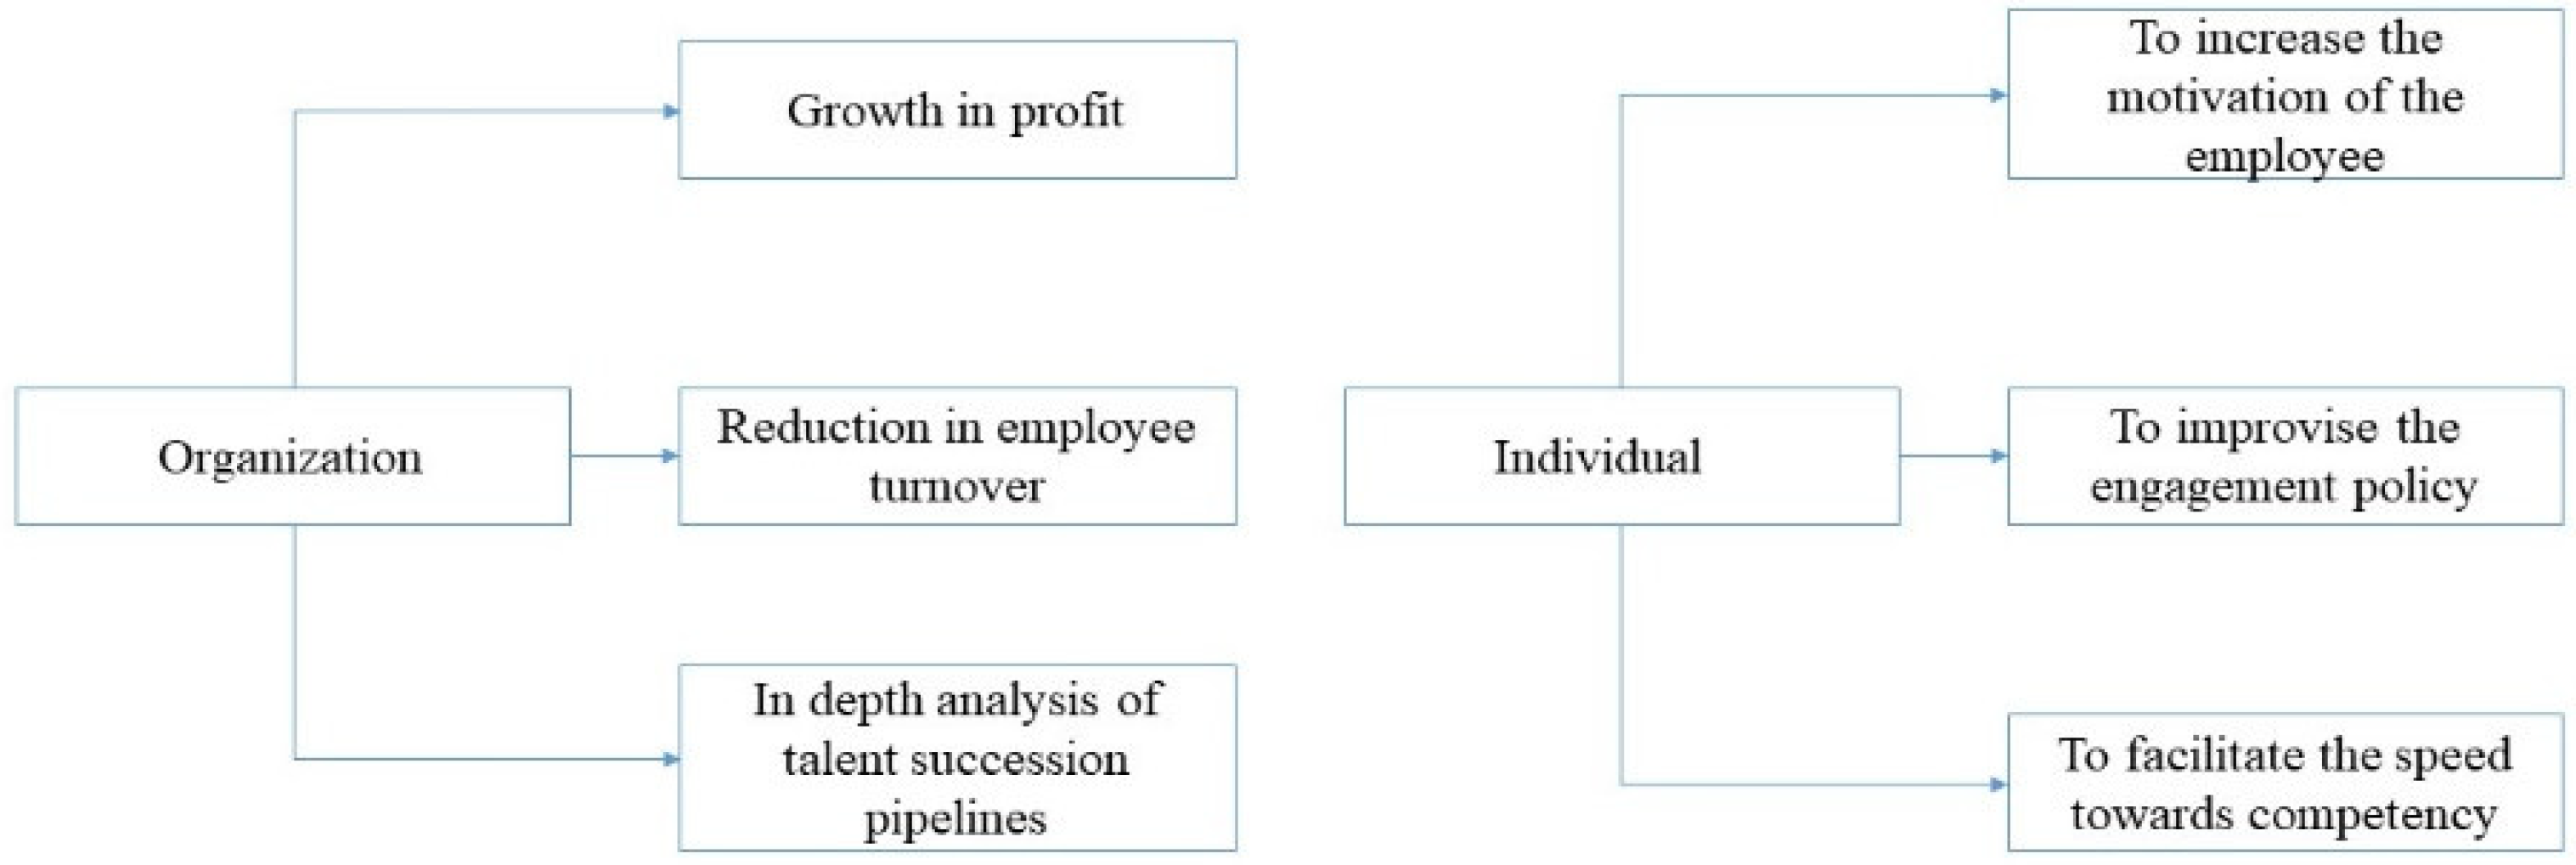 Social Sciences | Free Full-Text | An Analysis of the Skill